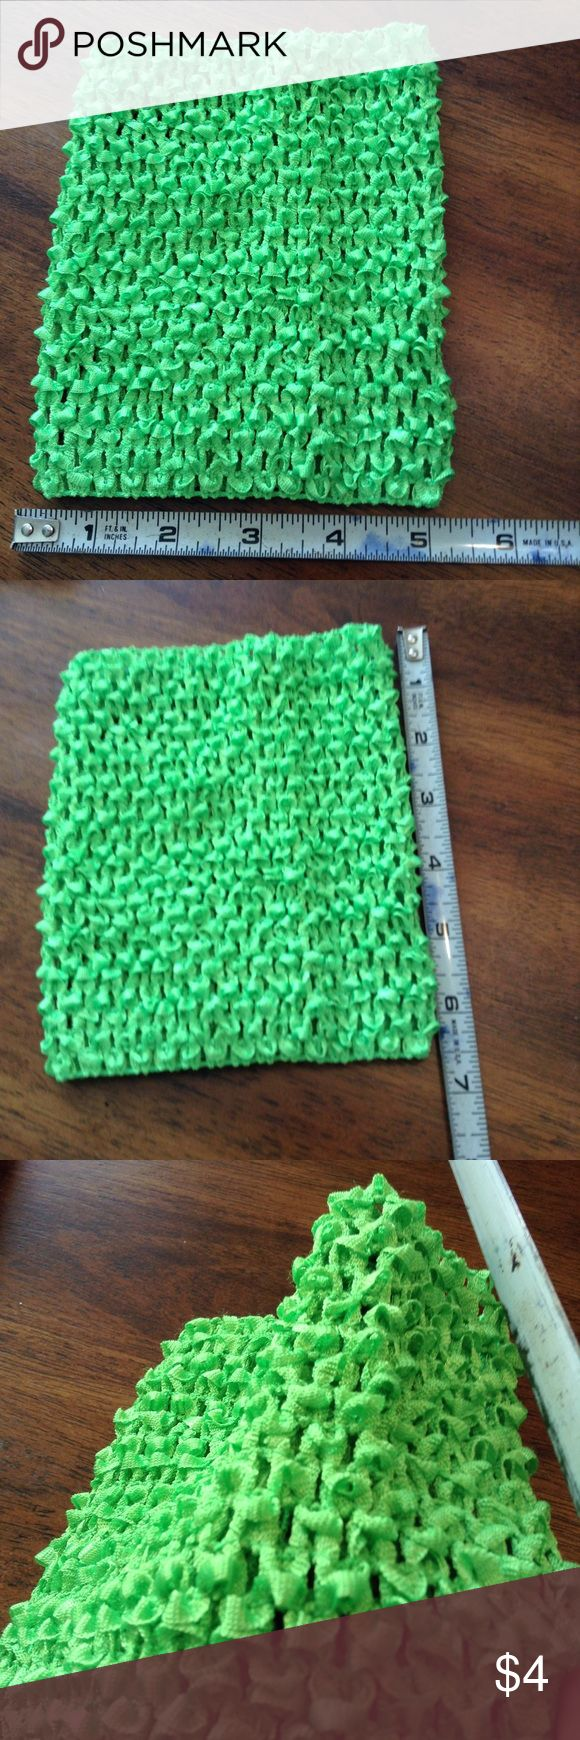 """Lime green crochet tube top Look at photo for """"size""""  Measurements shown Stretchy material Lime green color by be slightly different due to screen.  NWOT Lowest price UNLESS item is bundled Shirts & Tops"""